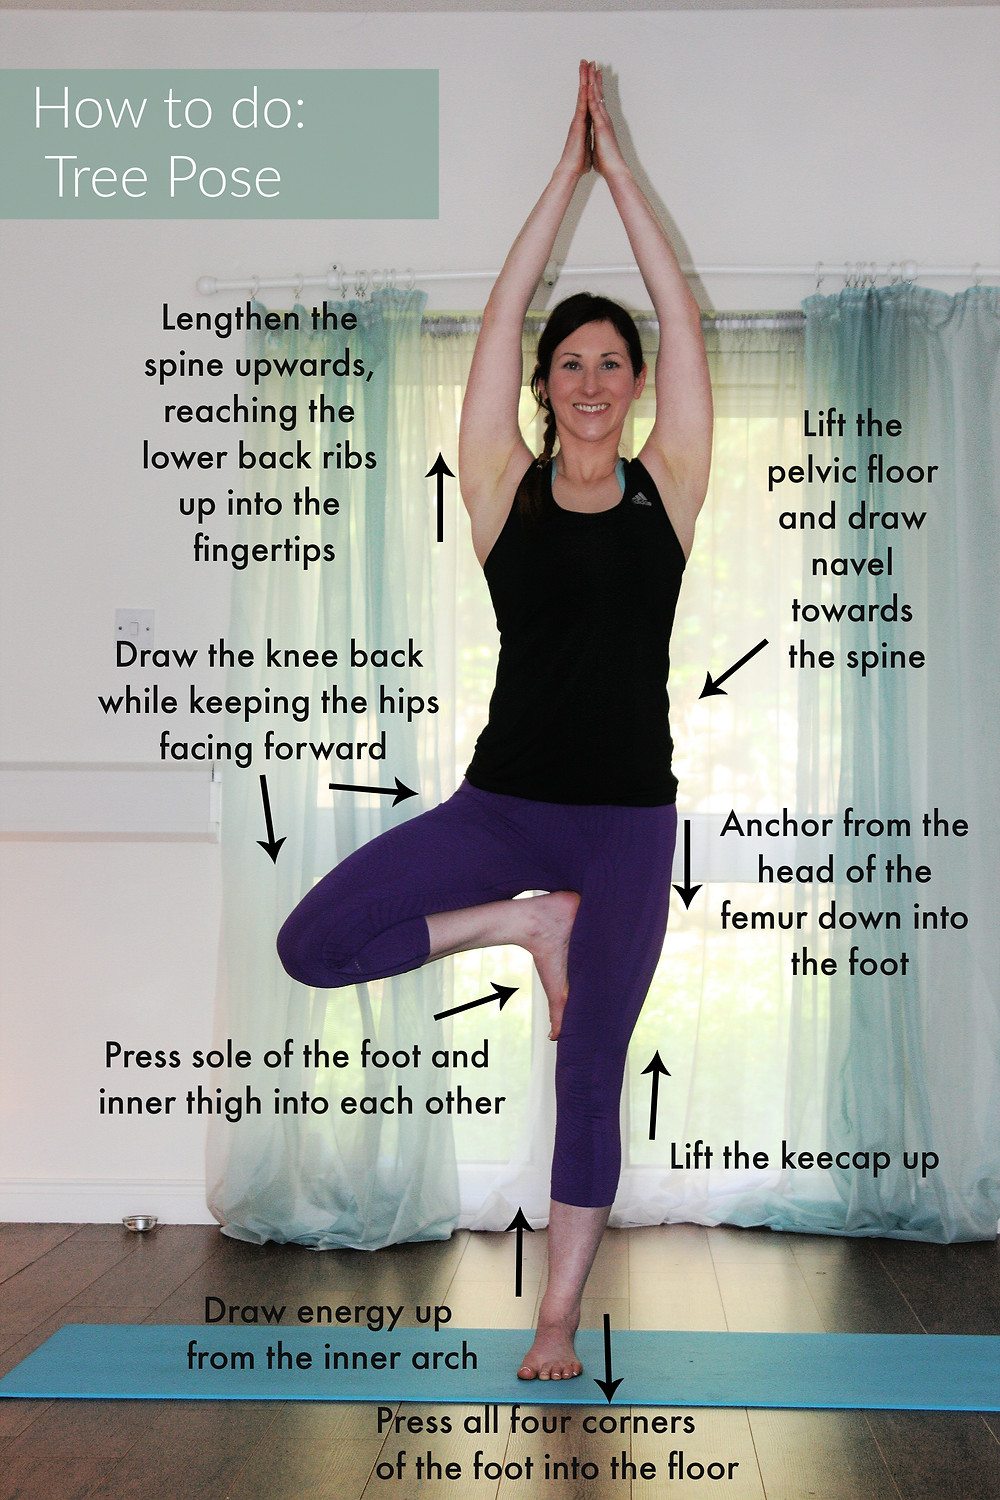 How to do Tree Pose